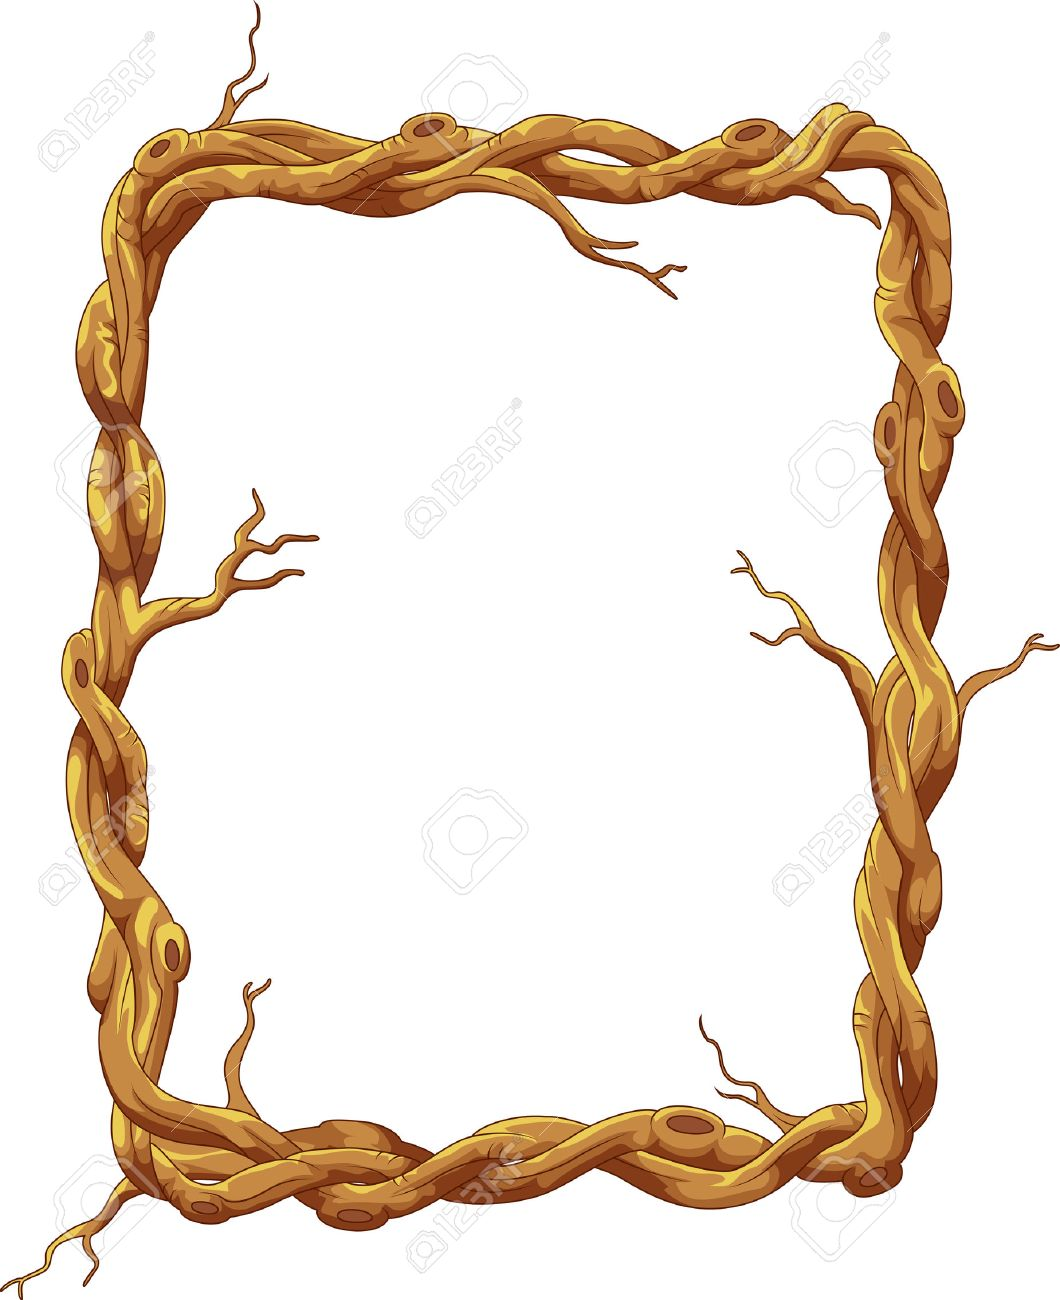 Frame cartoon made of tree trunk and branches royalty free frame cartoon made of tree trunk and branches stock vector 36776707 jeuxipadfo Choice Image